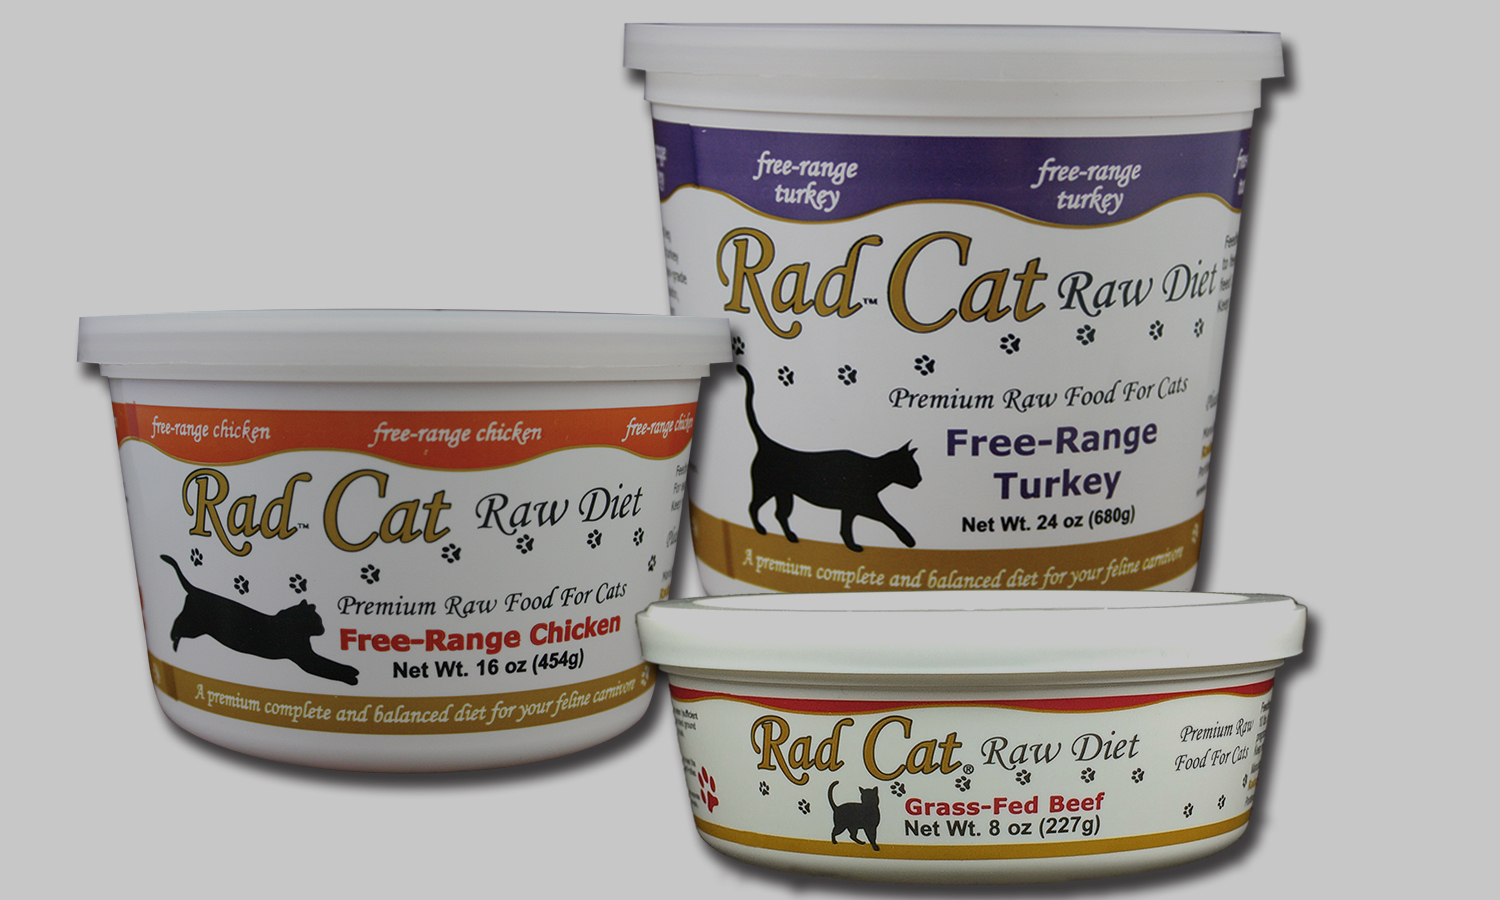 Three Flavors Of Raw Cat Food Recalled Over Listeria, Salmonella Contamination